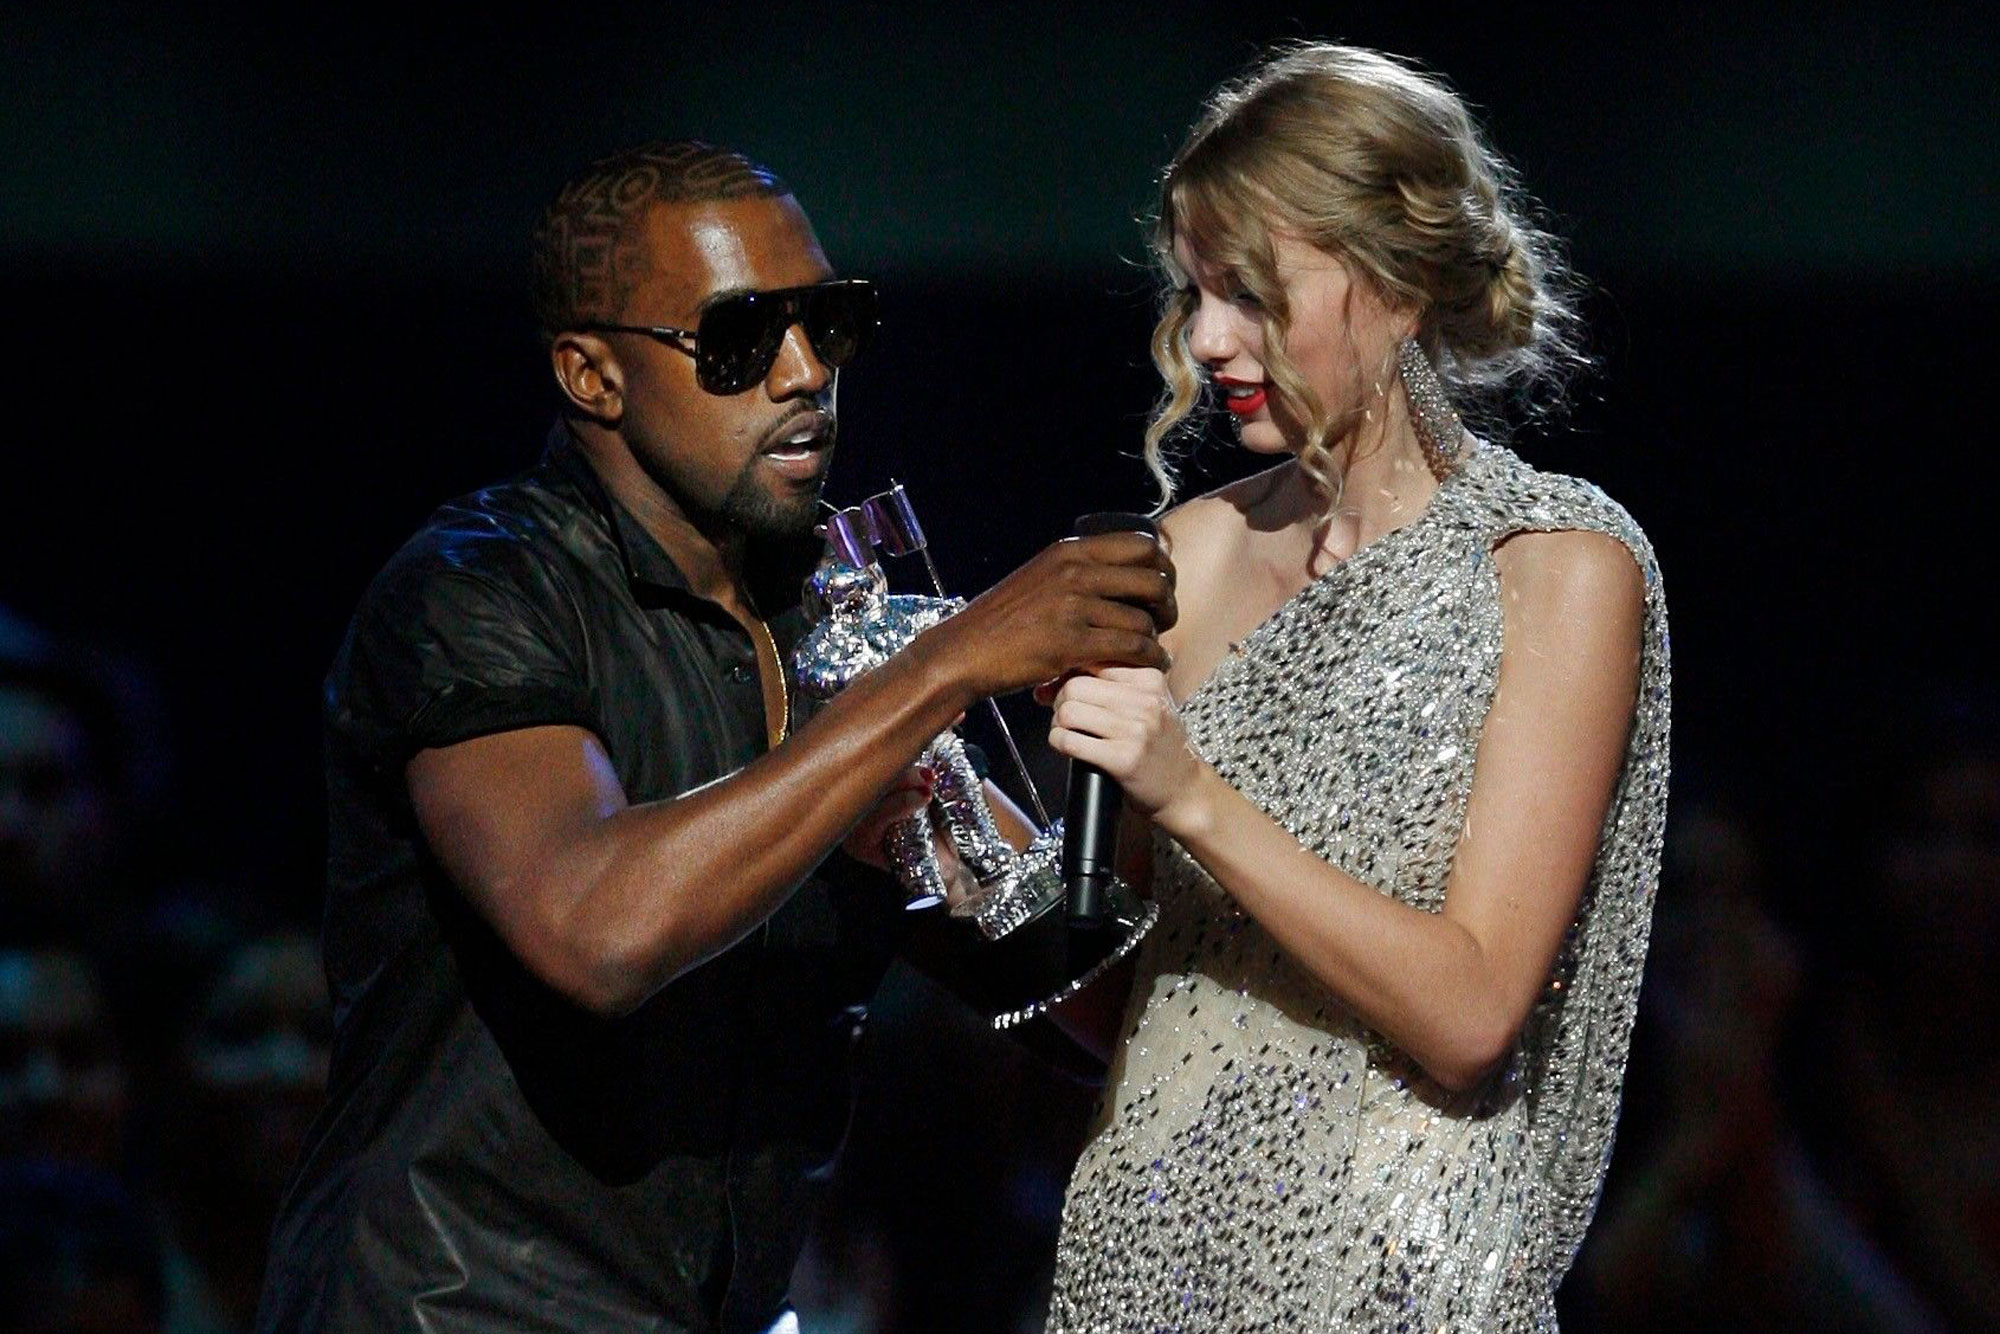 """""""kanye-west-promises-hes-going-to-make-sure-taylor-swift-gets-the-rights-to-her-albums-back-from-close-family-friend-scooter-braun"""""""